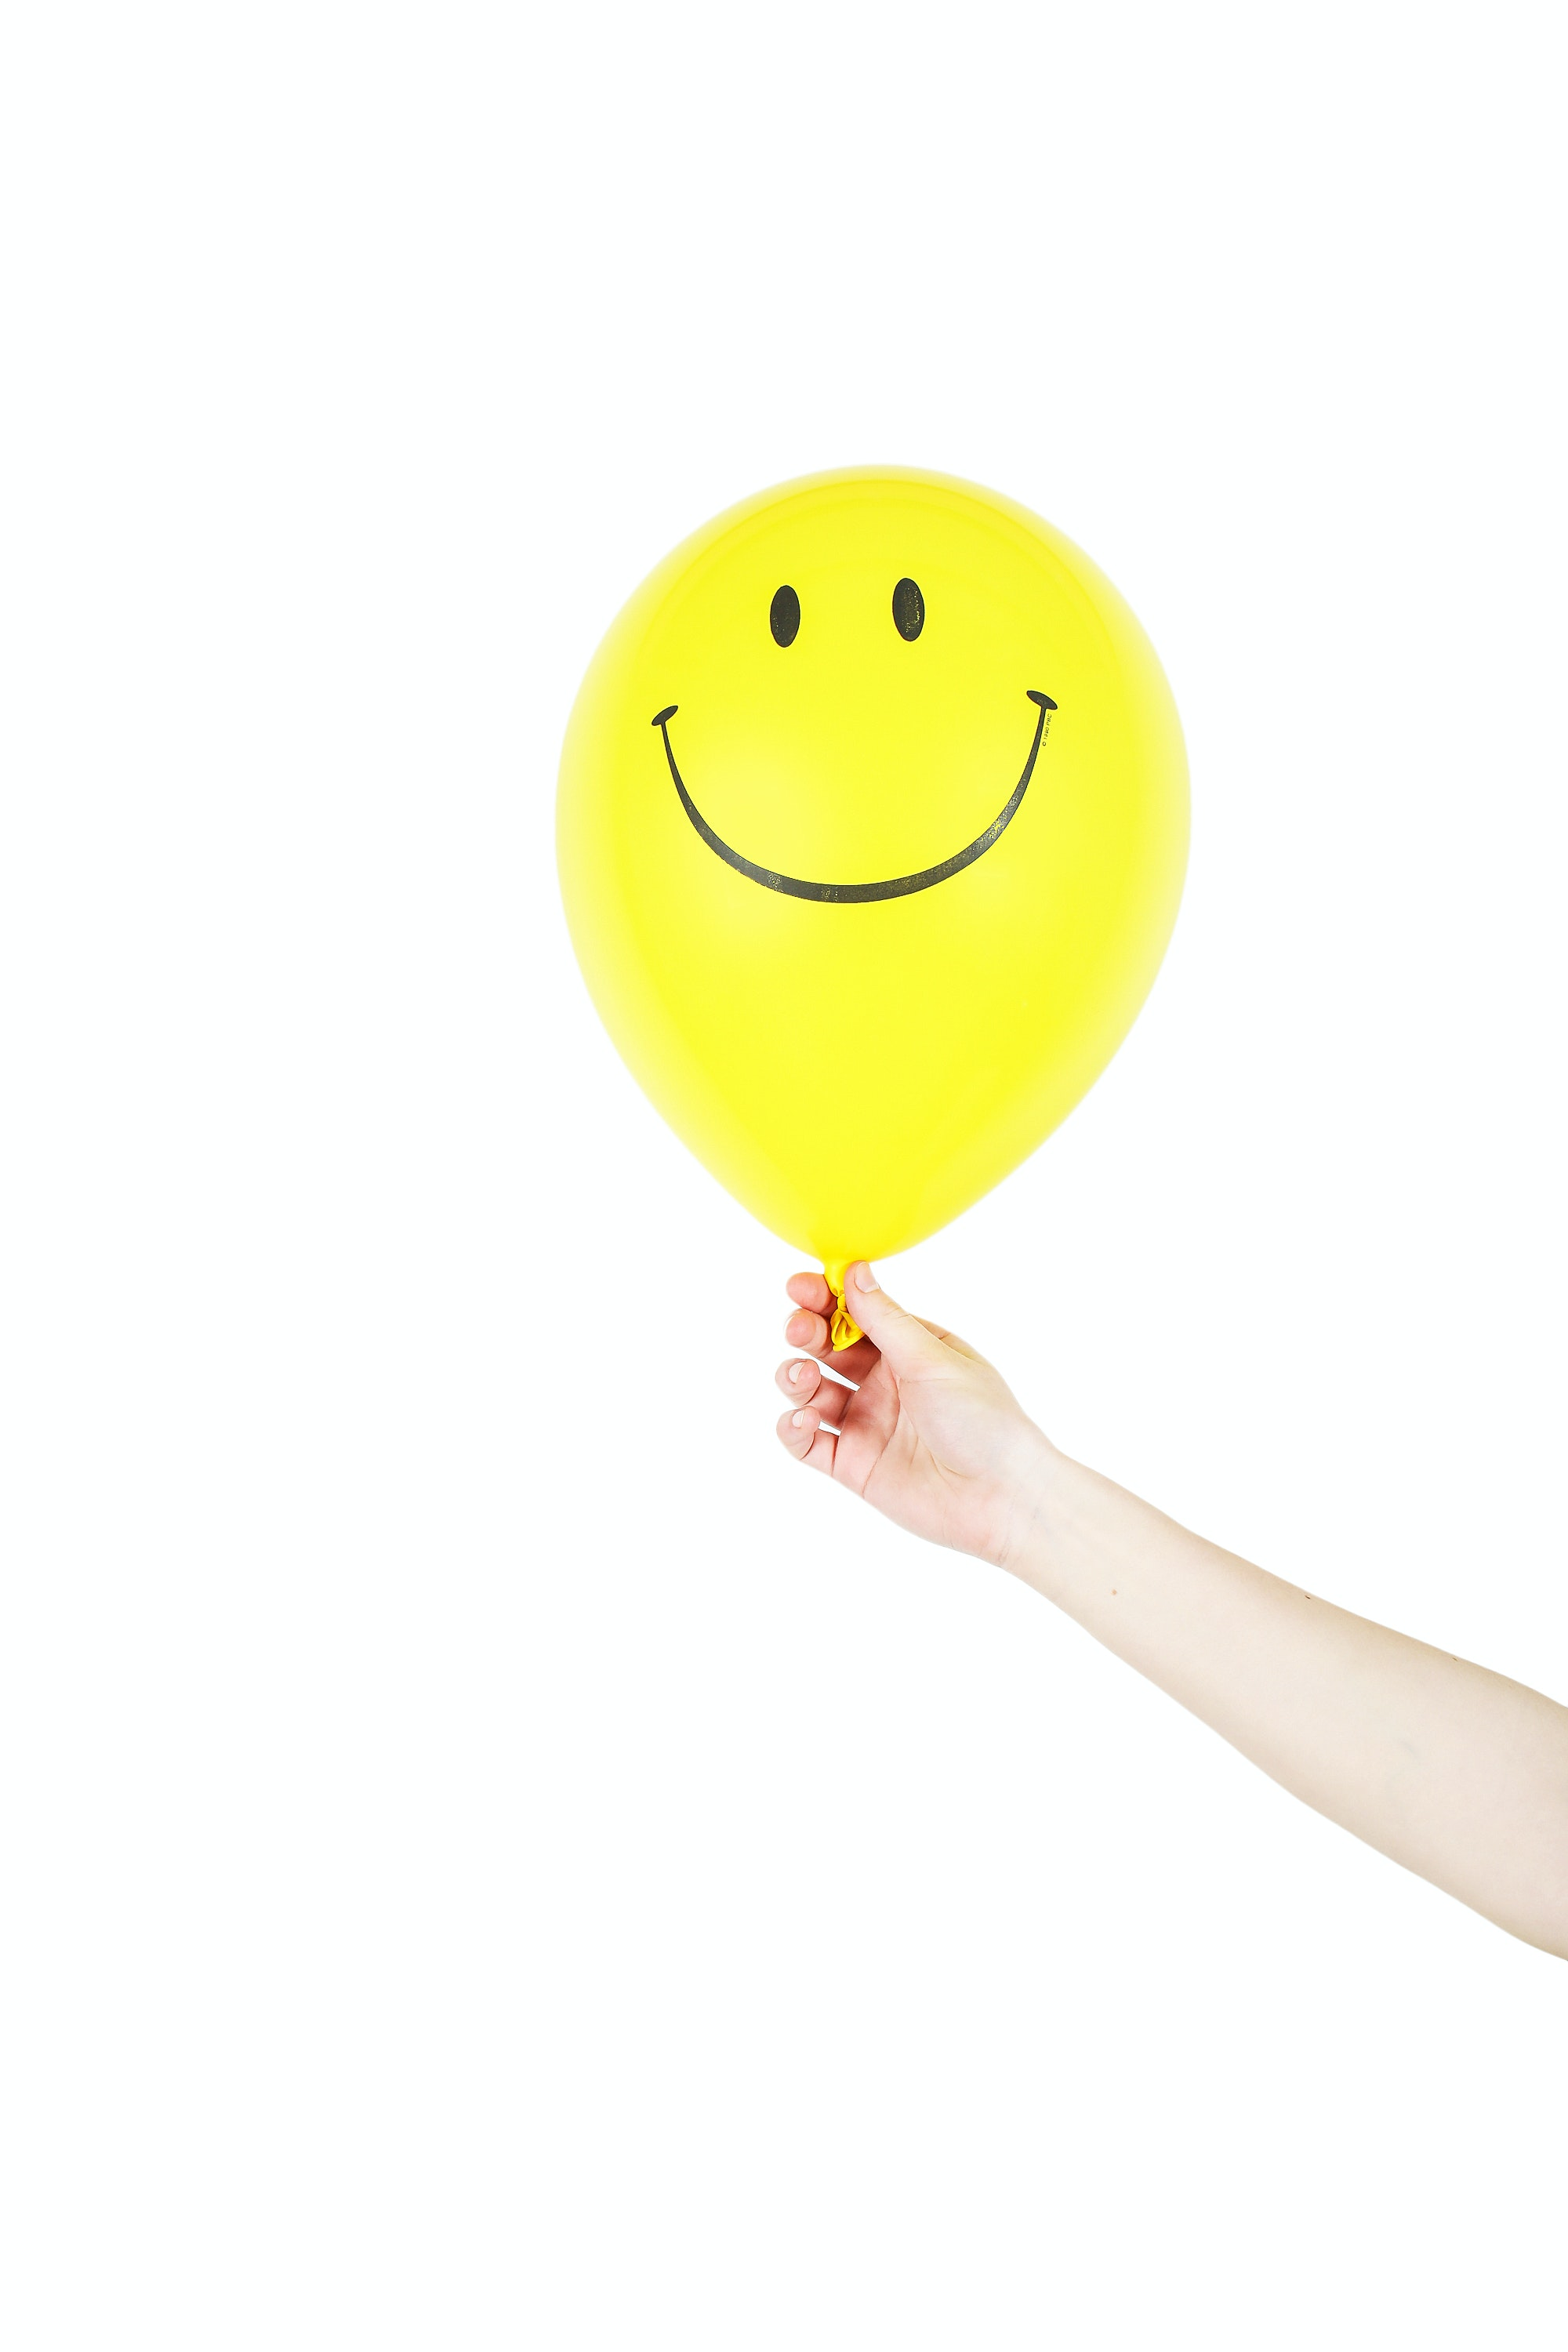 Someone holding a yellow balloon with a smiley face on it